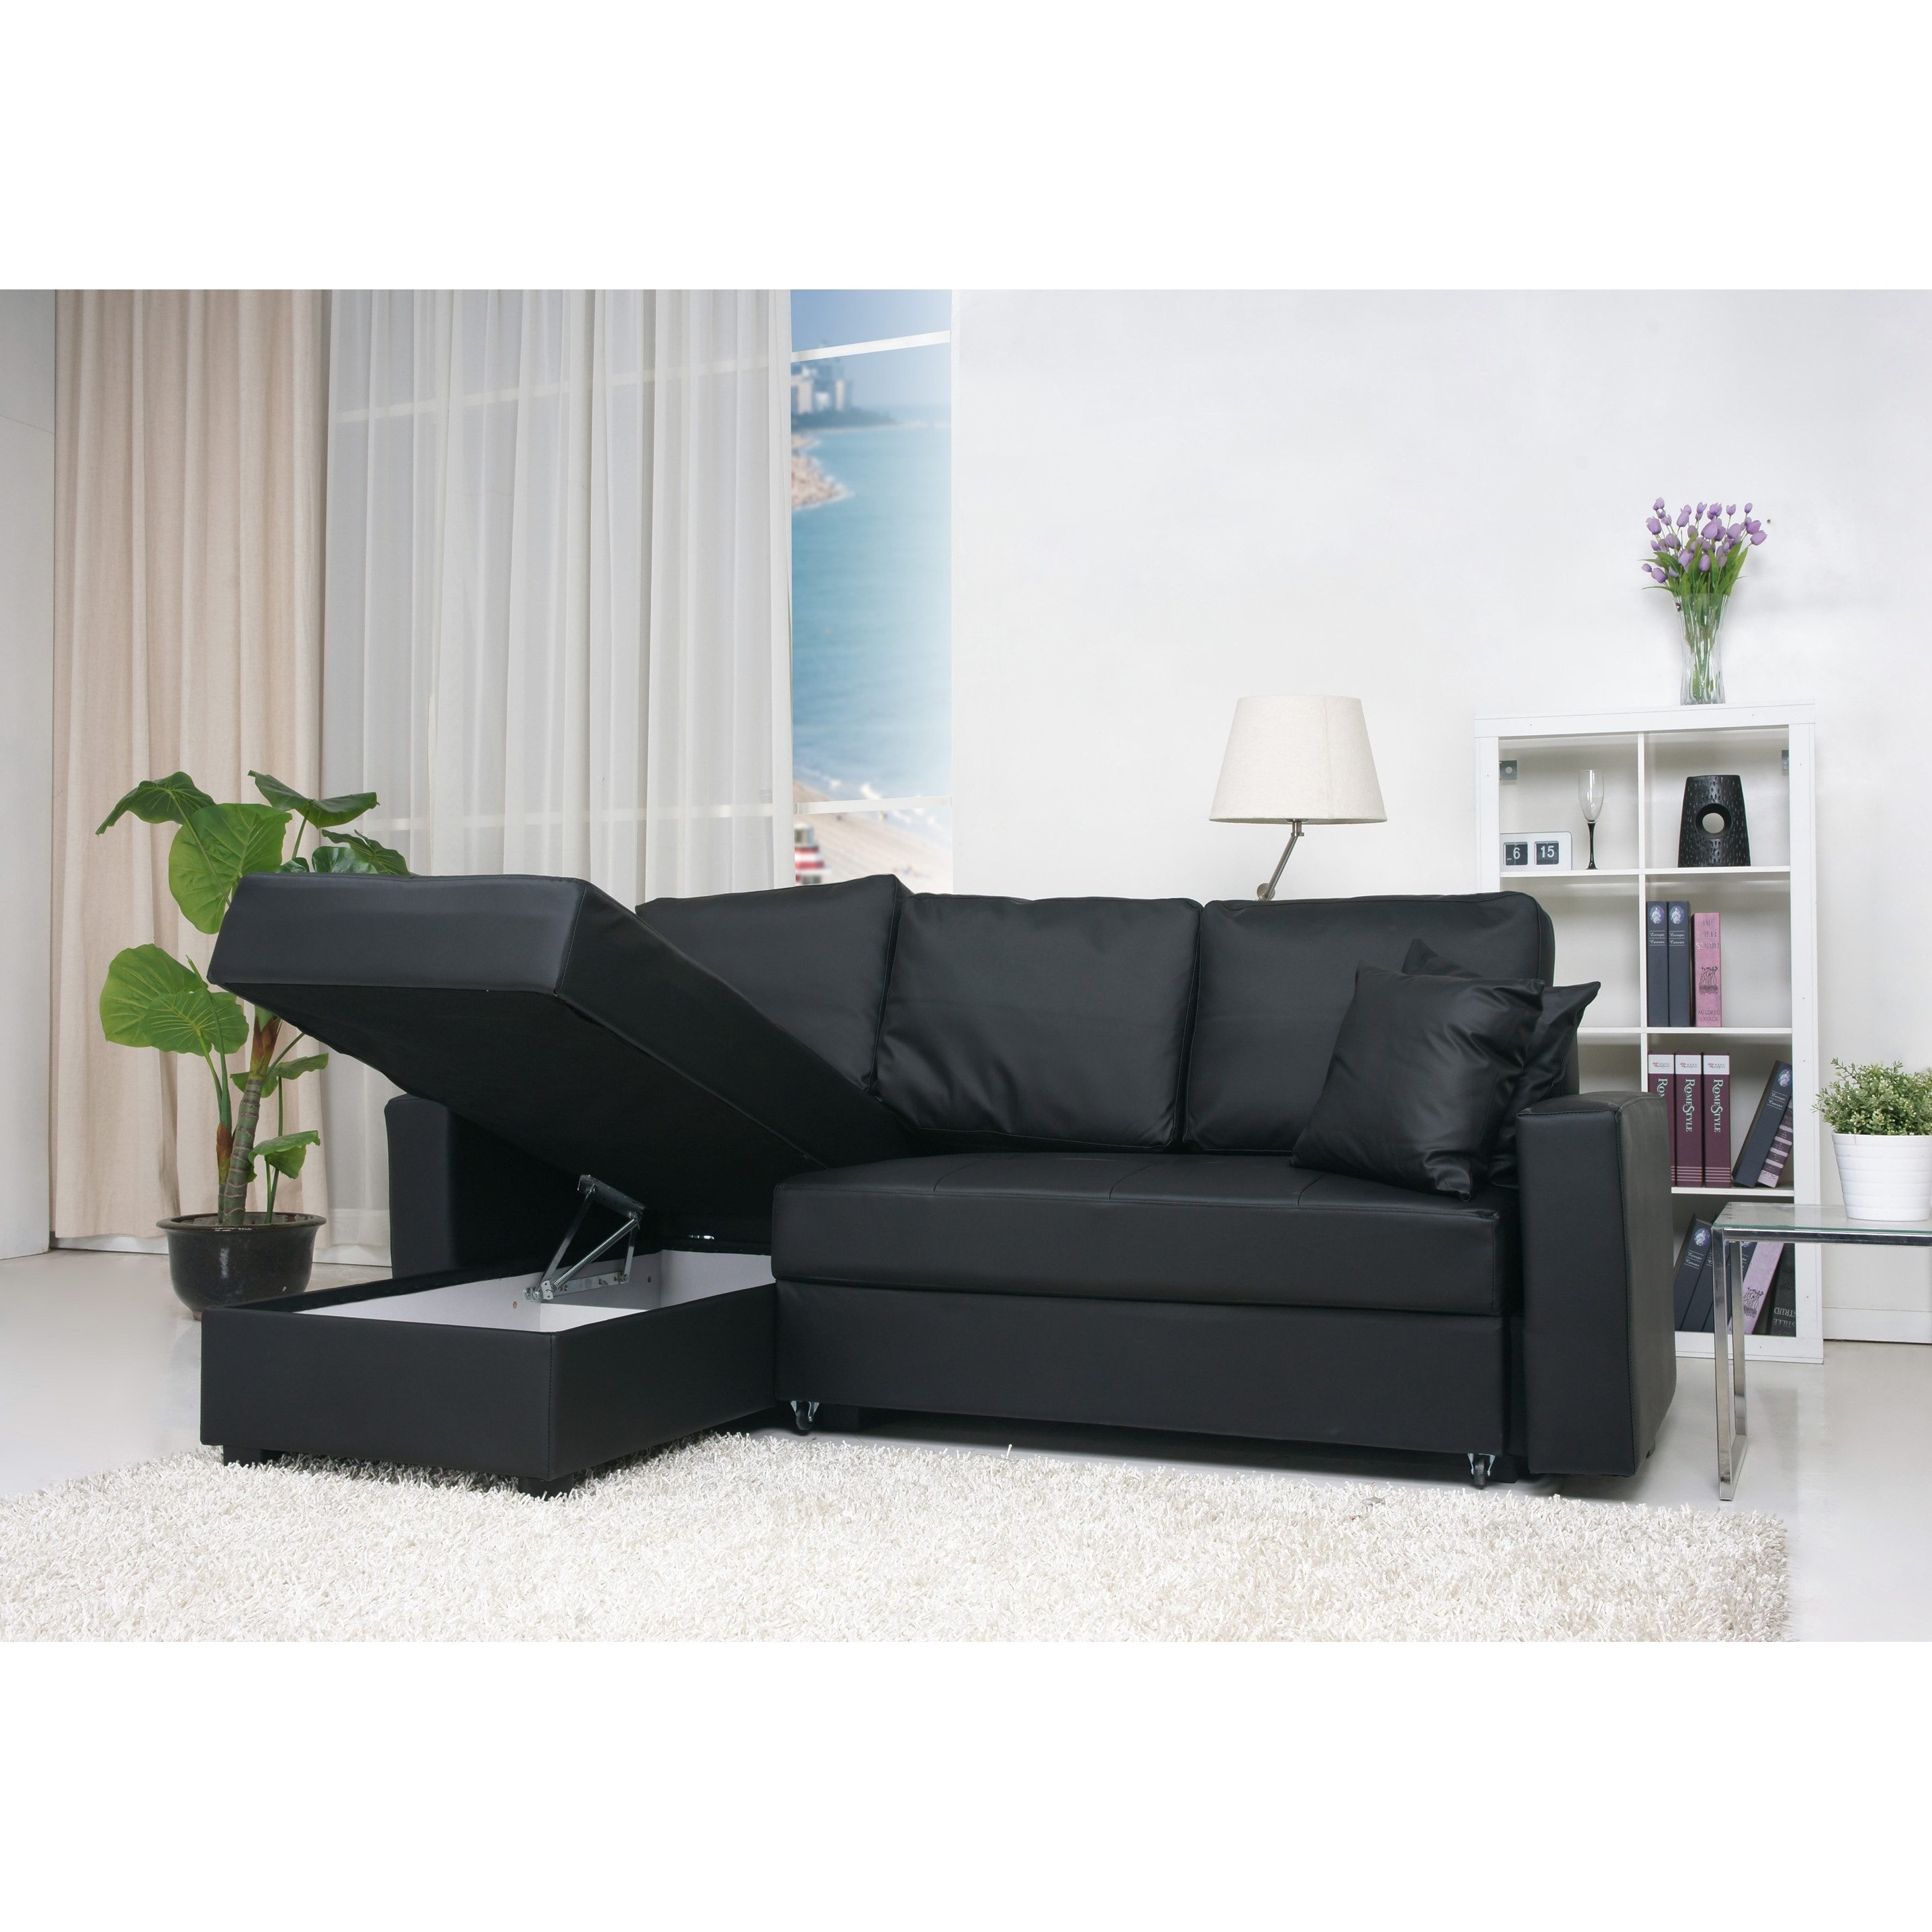 Furniture & Sofa: Compact Sectional Sofas | Small Spaces Regarding Sectional Sofas At Ebay (Image 3 of 10)